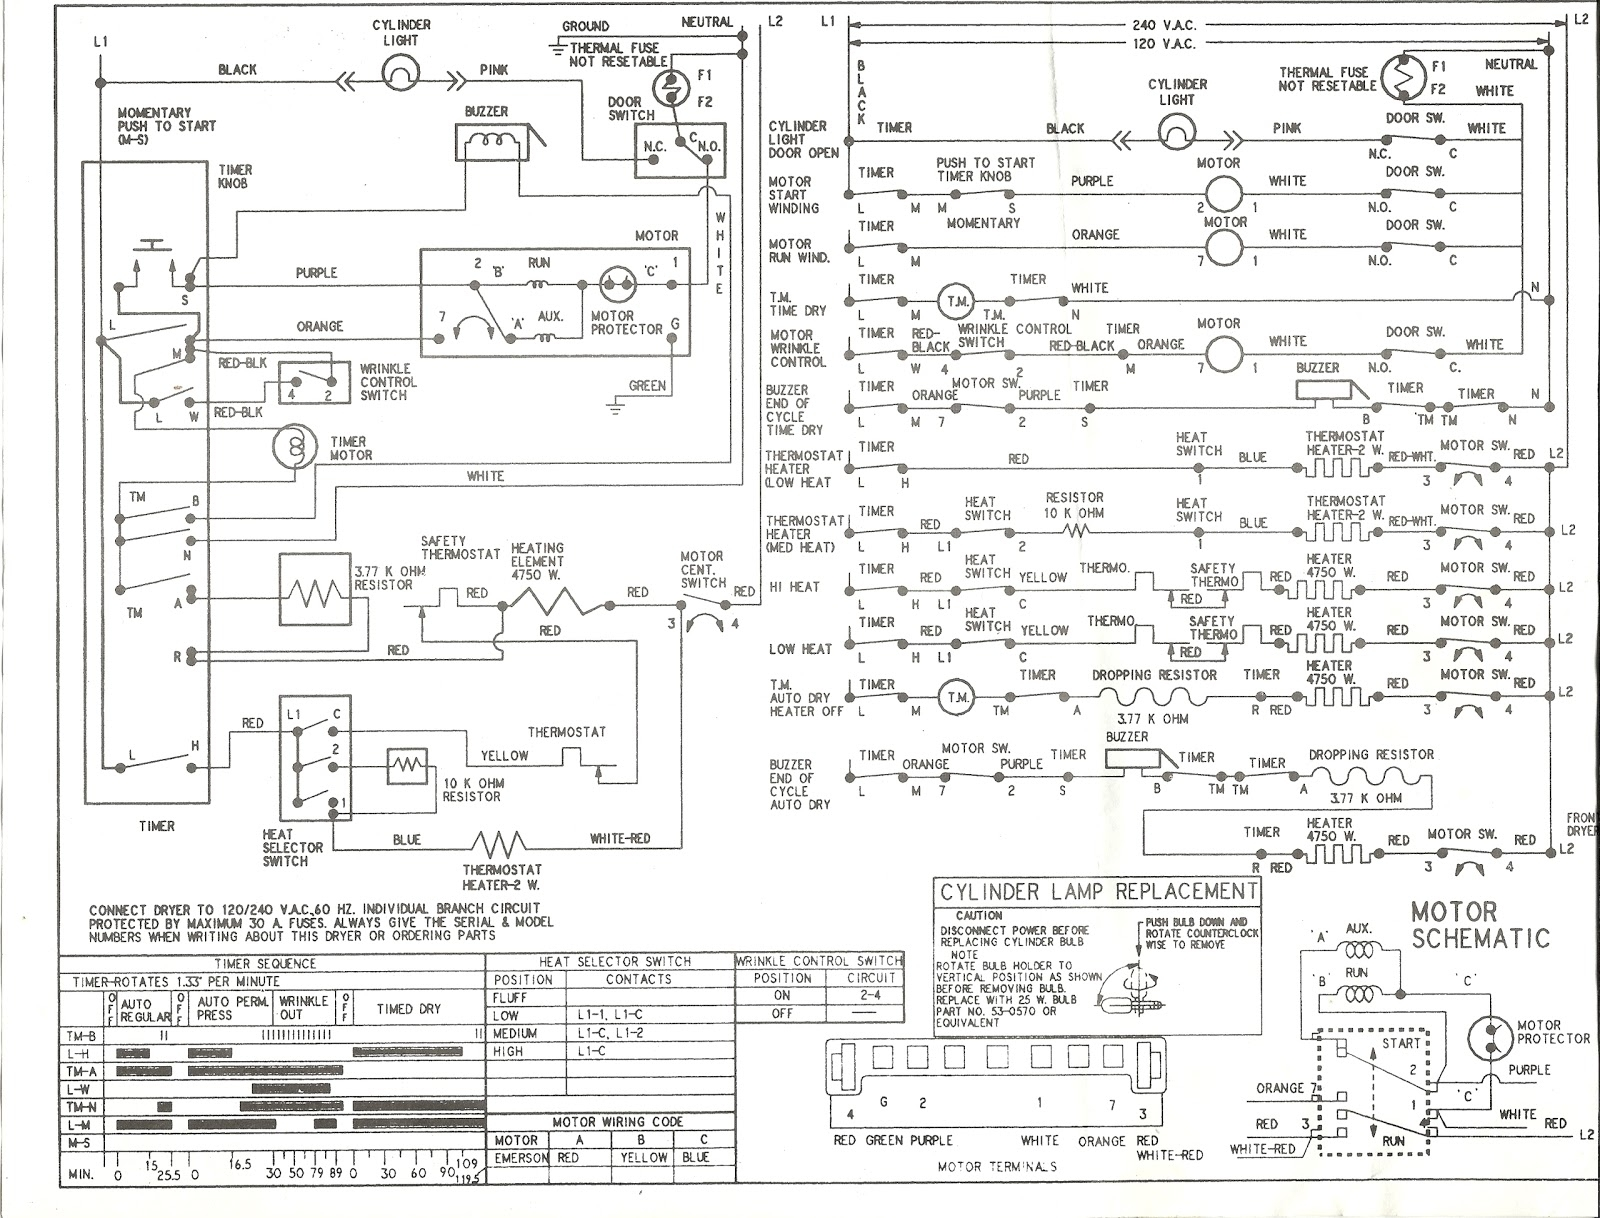 kenmore washer wiring diagram on wiring diagram parts wiring for kenmore 80 series washer parts diagram 80 series wiring diagram power wiring diagram \u2022 free wiring audi 80 wiring diagram at bakdesigns.co